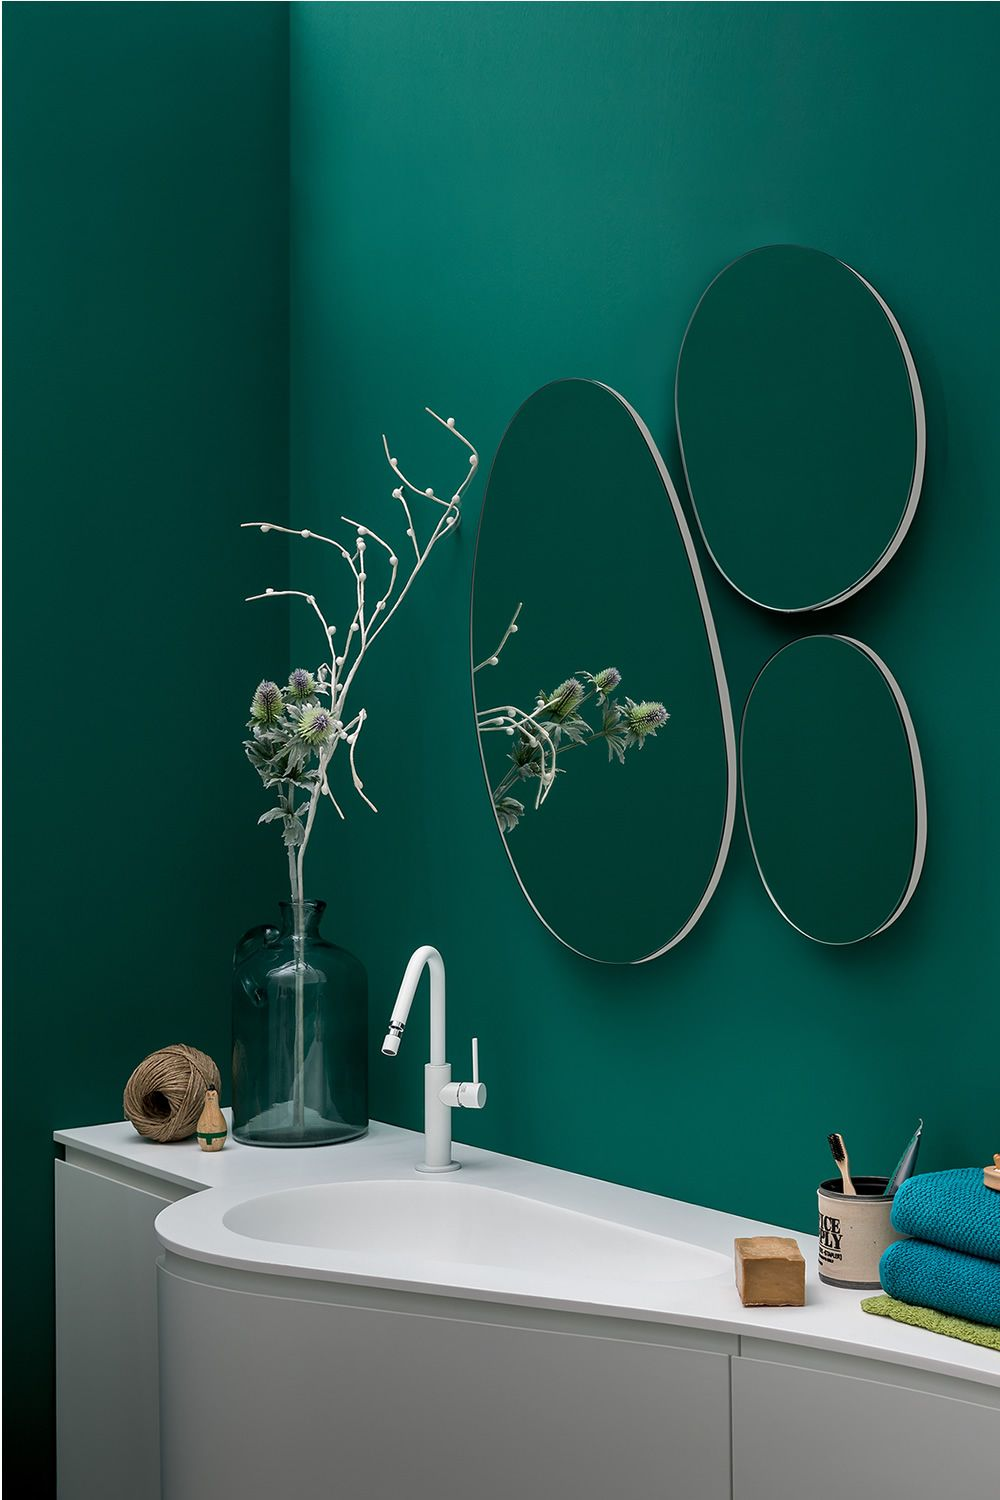 Mirror composition matching with Versa sink cabinet